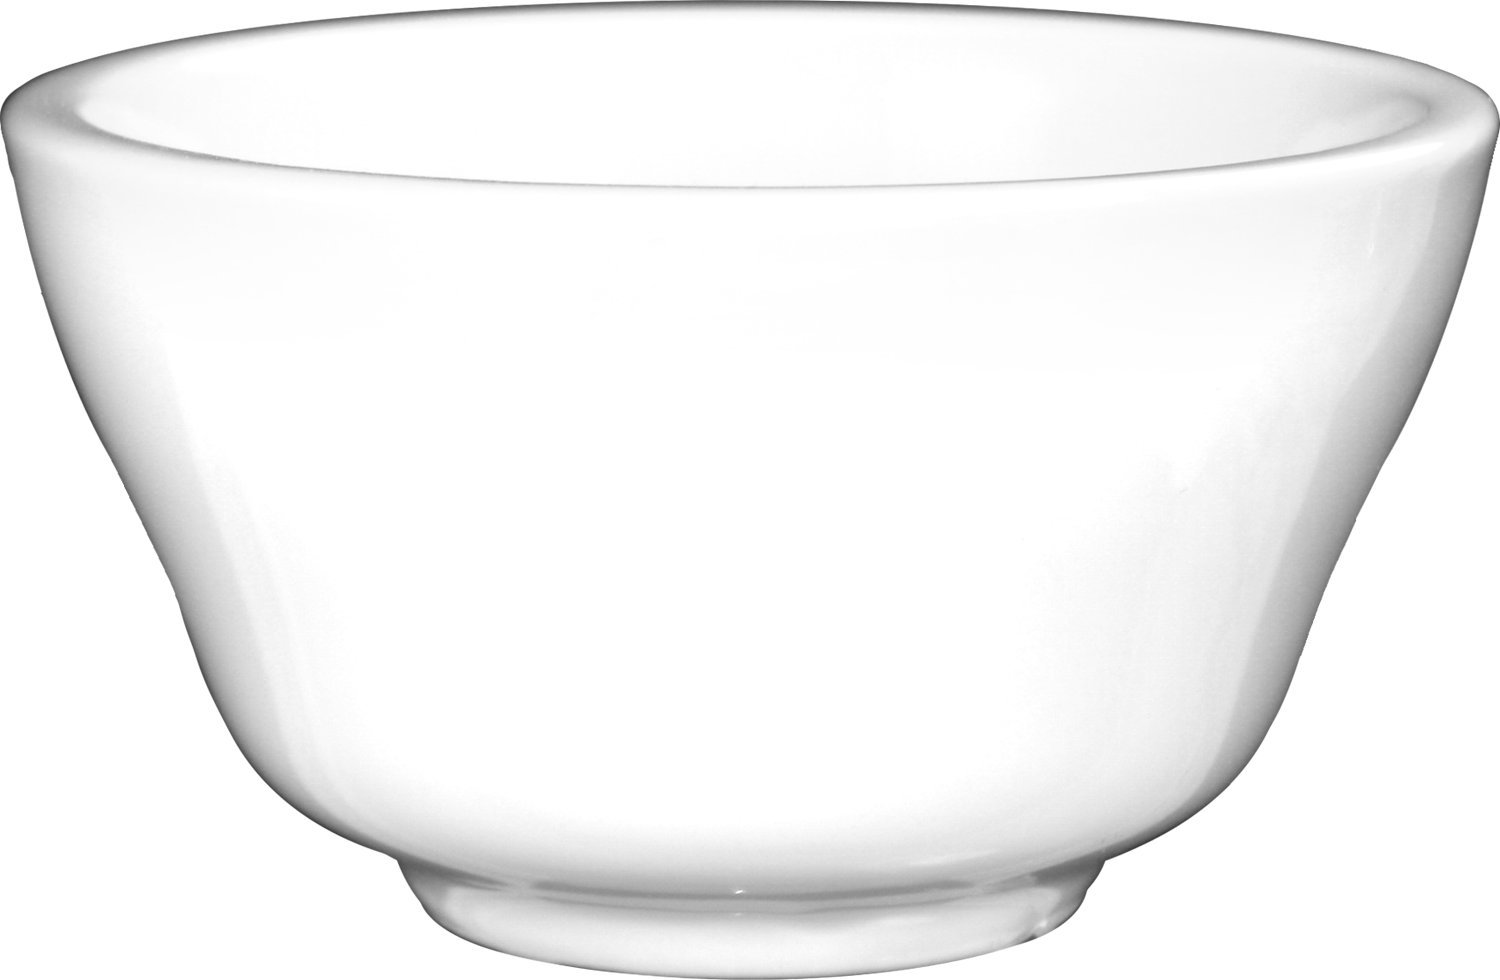 ITI BL-4 Bristol Porcelain 4-1/8-Inch Fine Porcelain Boullion, 7.5-Ounce, Bright White, 36-Piece International Tableware Inc.